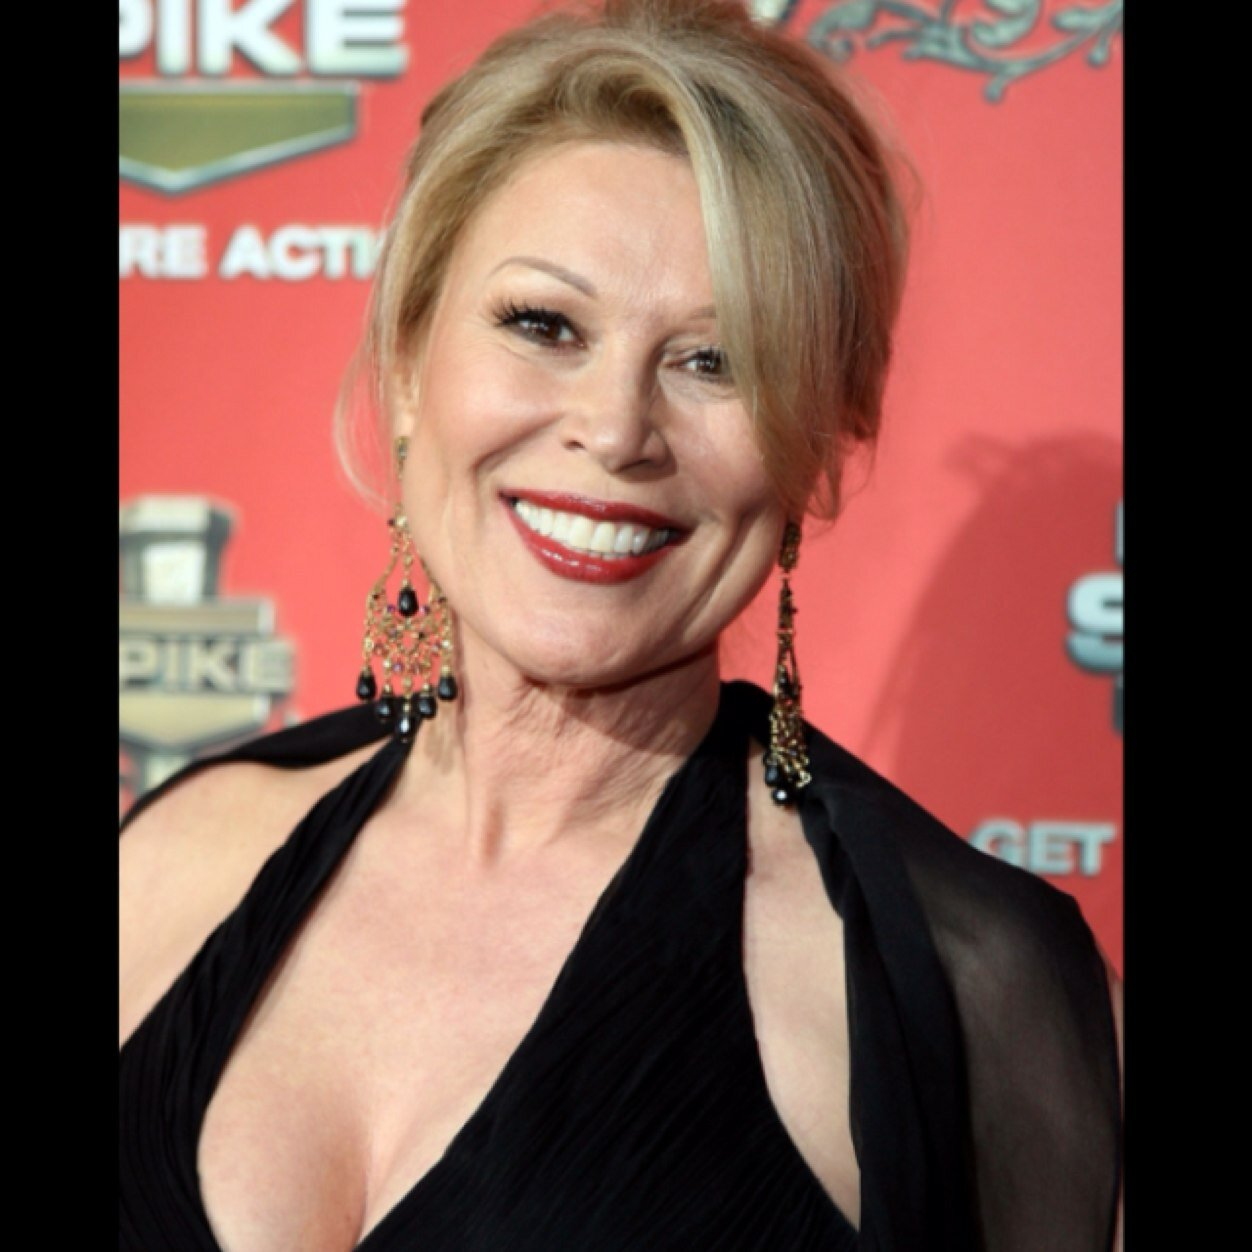 Leslie Easterbrook earned a  million dollar salary, leaving the net worth at 2 million in 2017